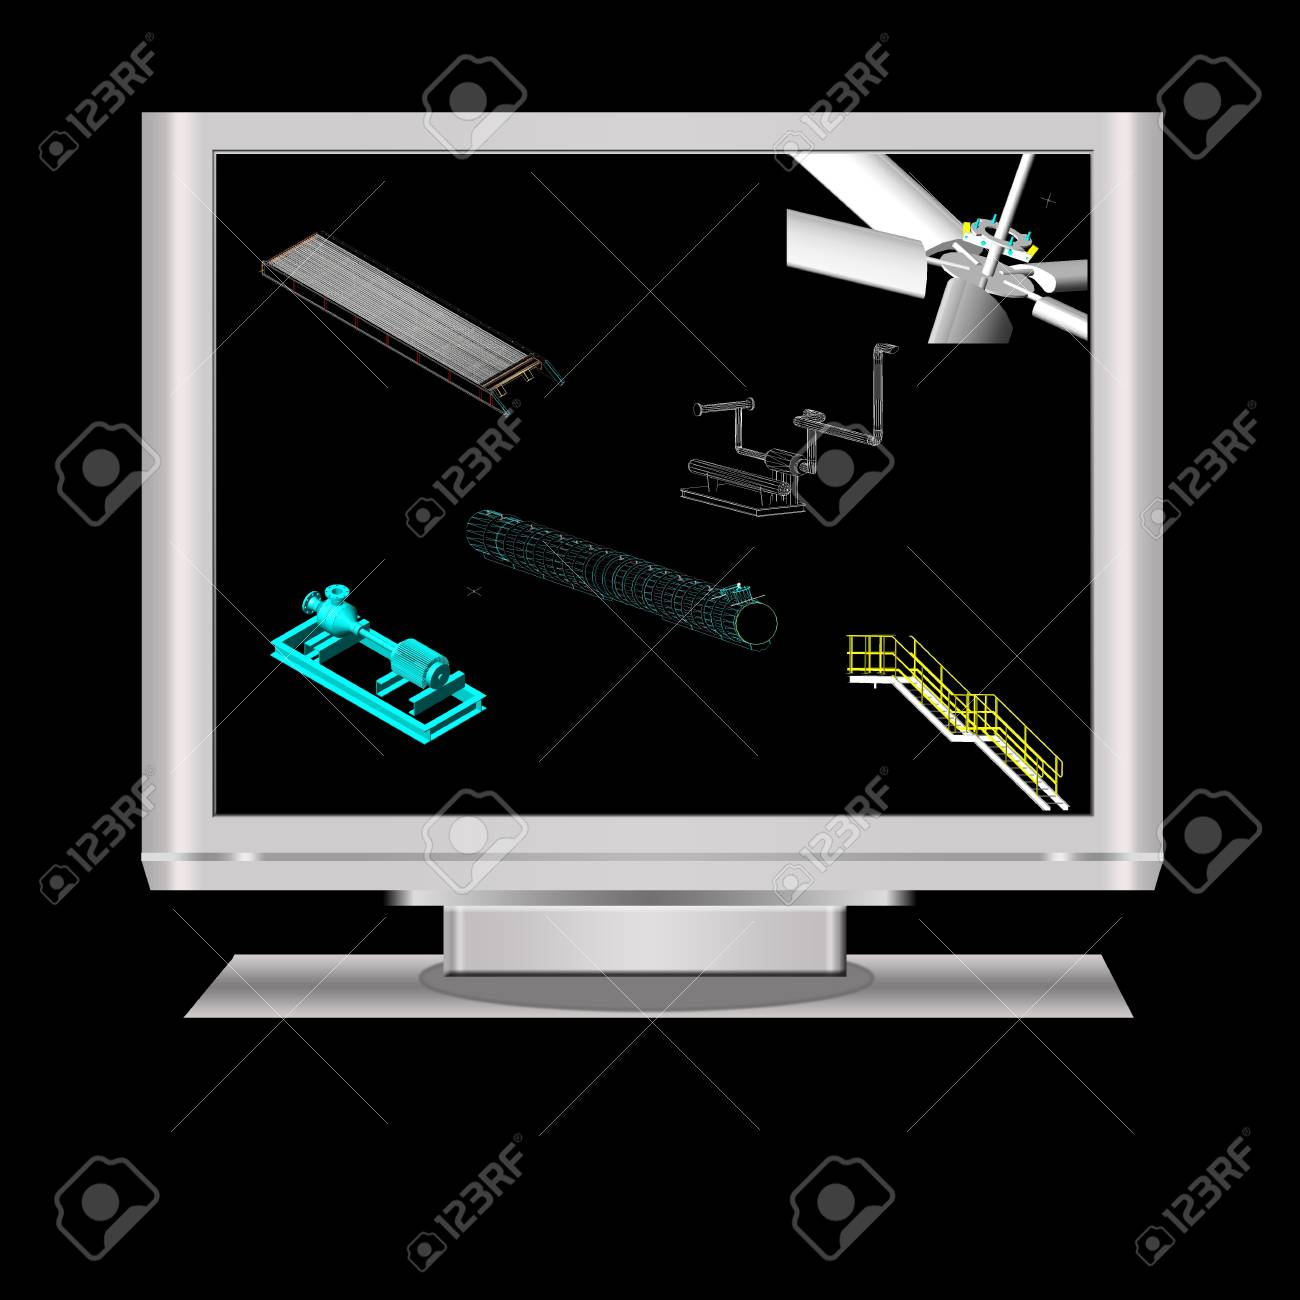 hight resolution of 3d modeling of machineryin a lcd monitor note all the 3d model in the